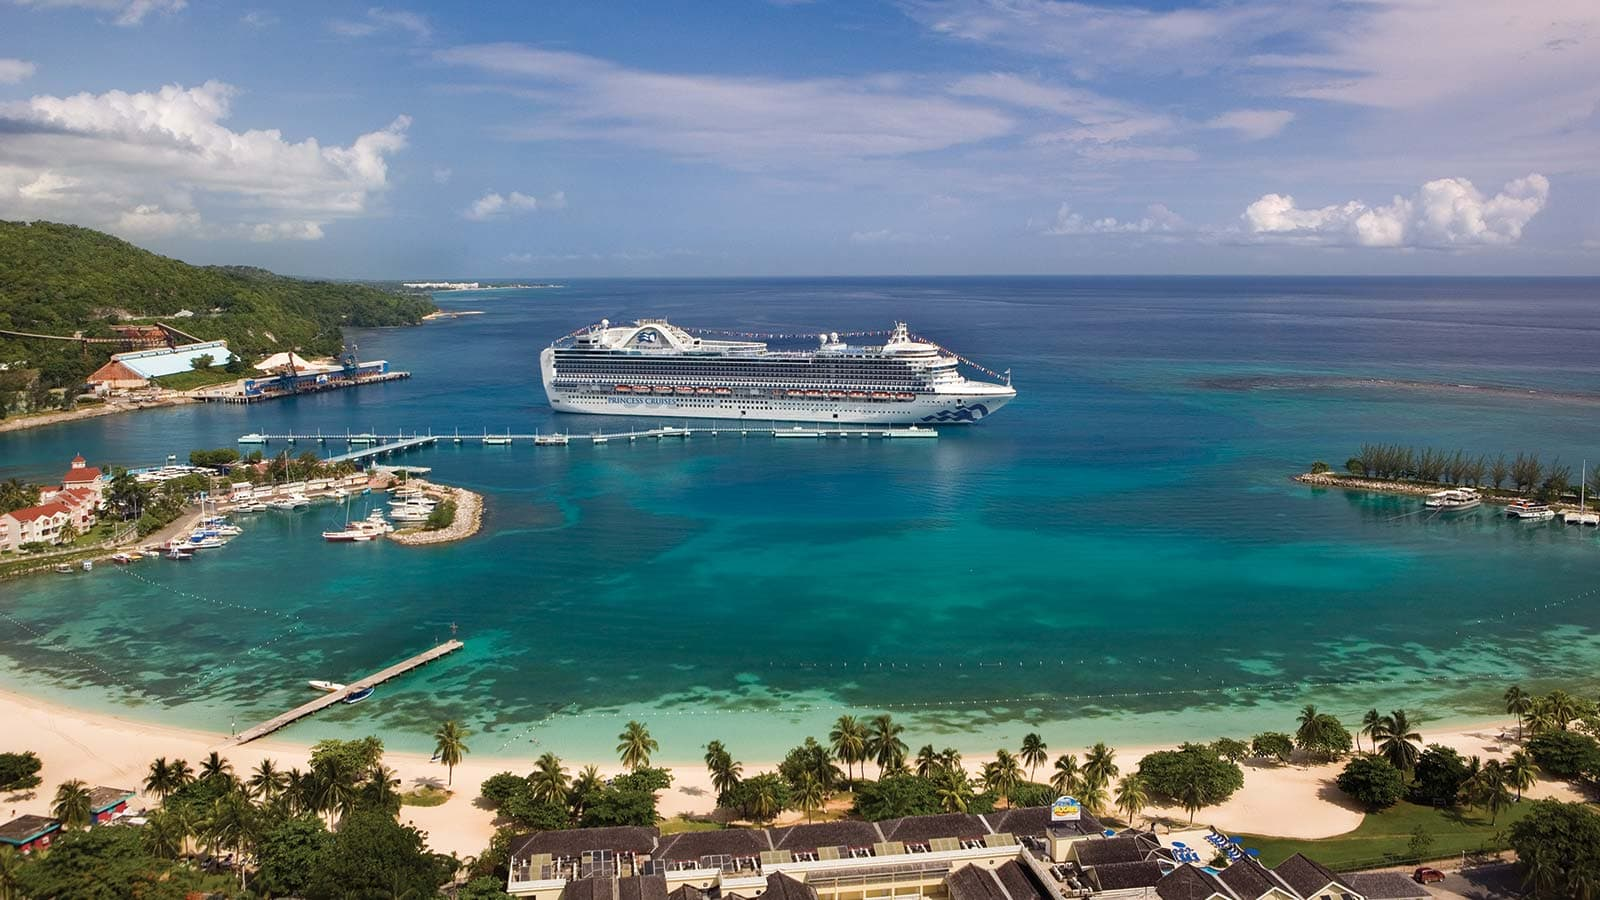 Best Time to Go on a Caribbean Cruise